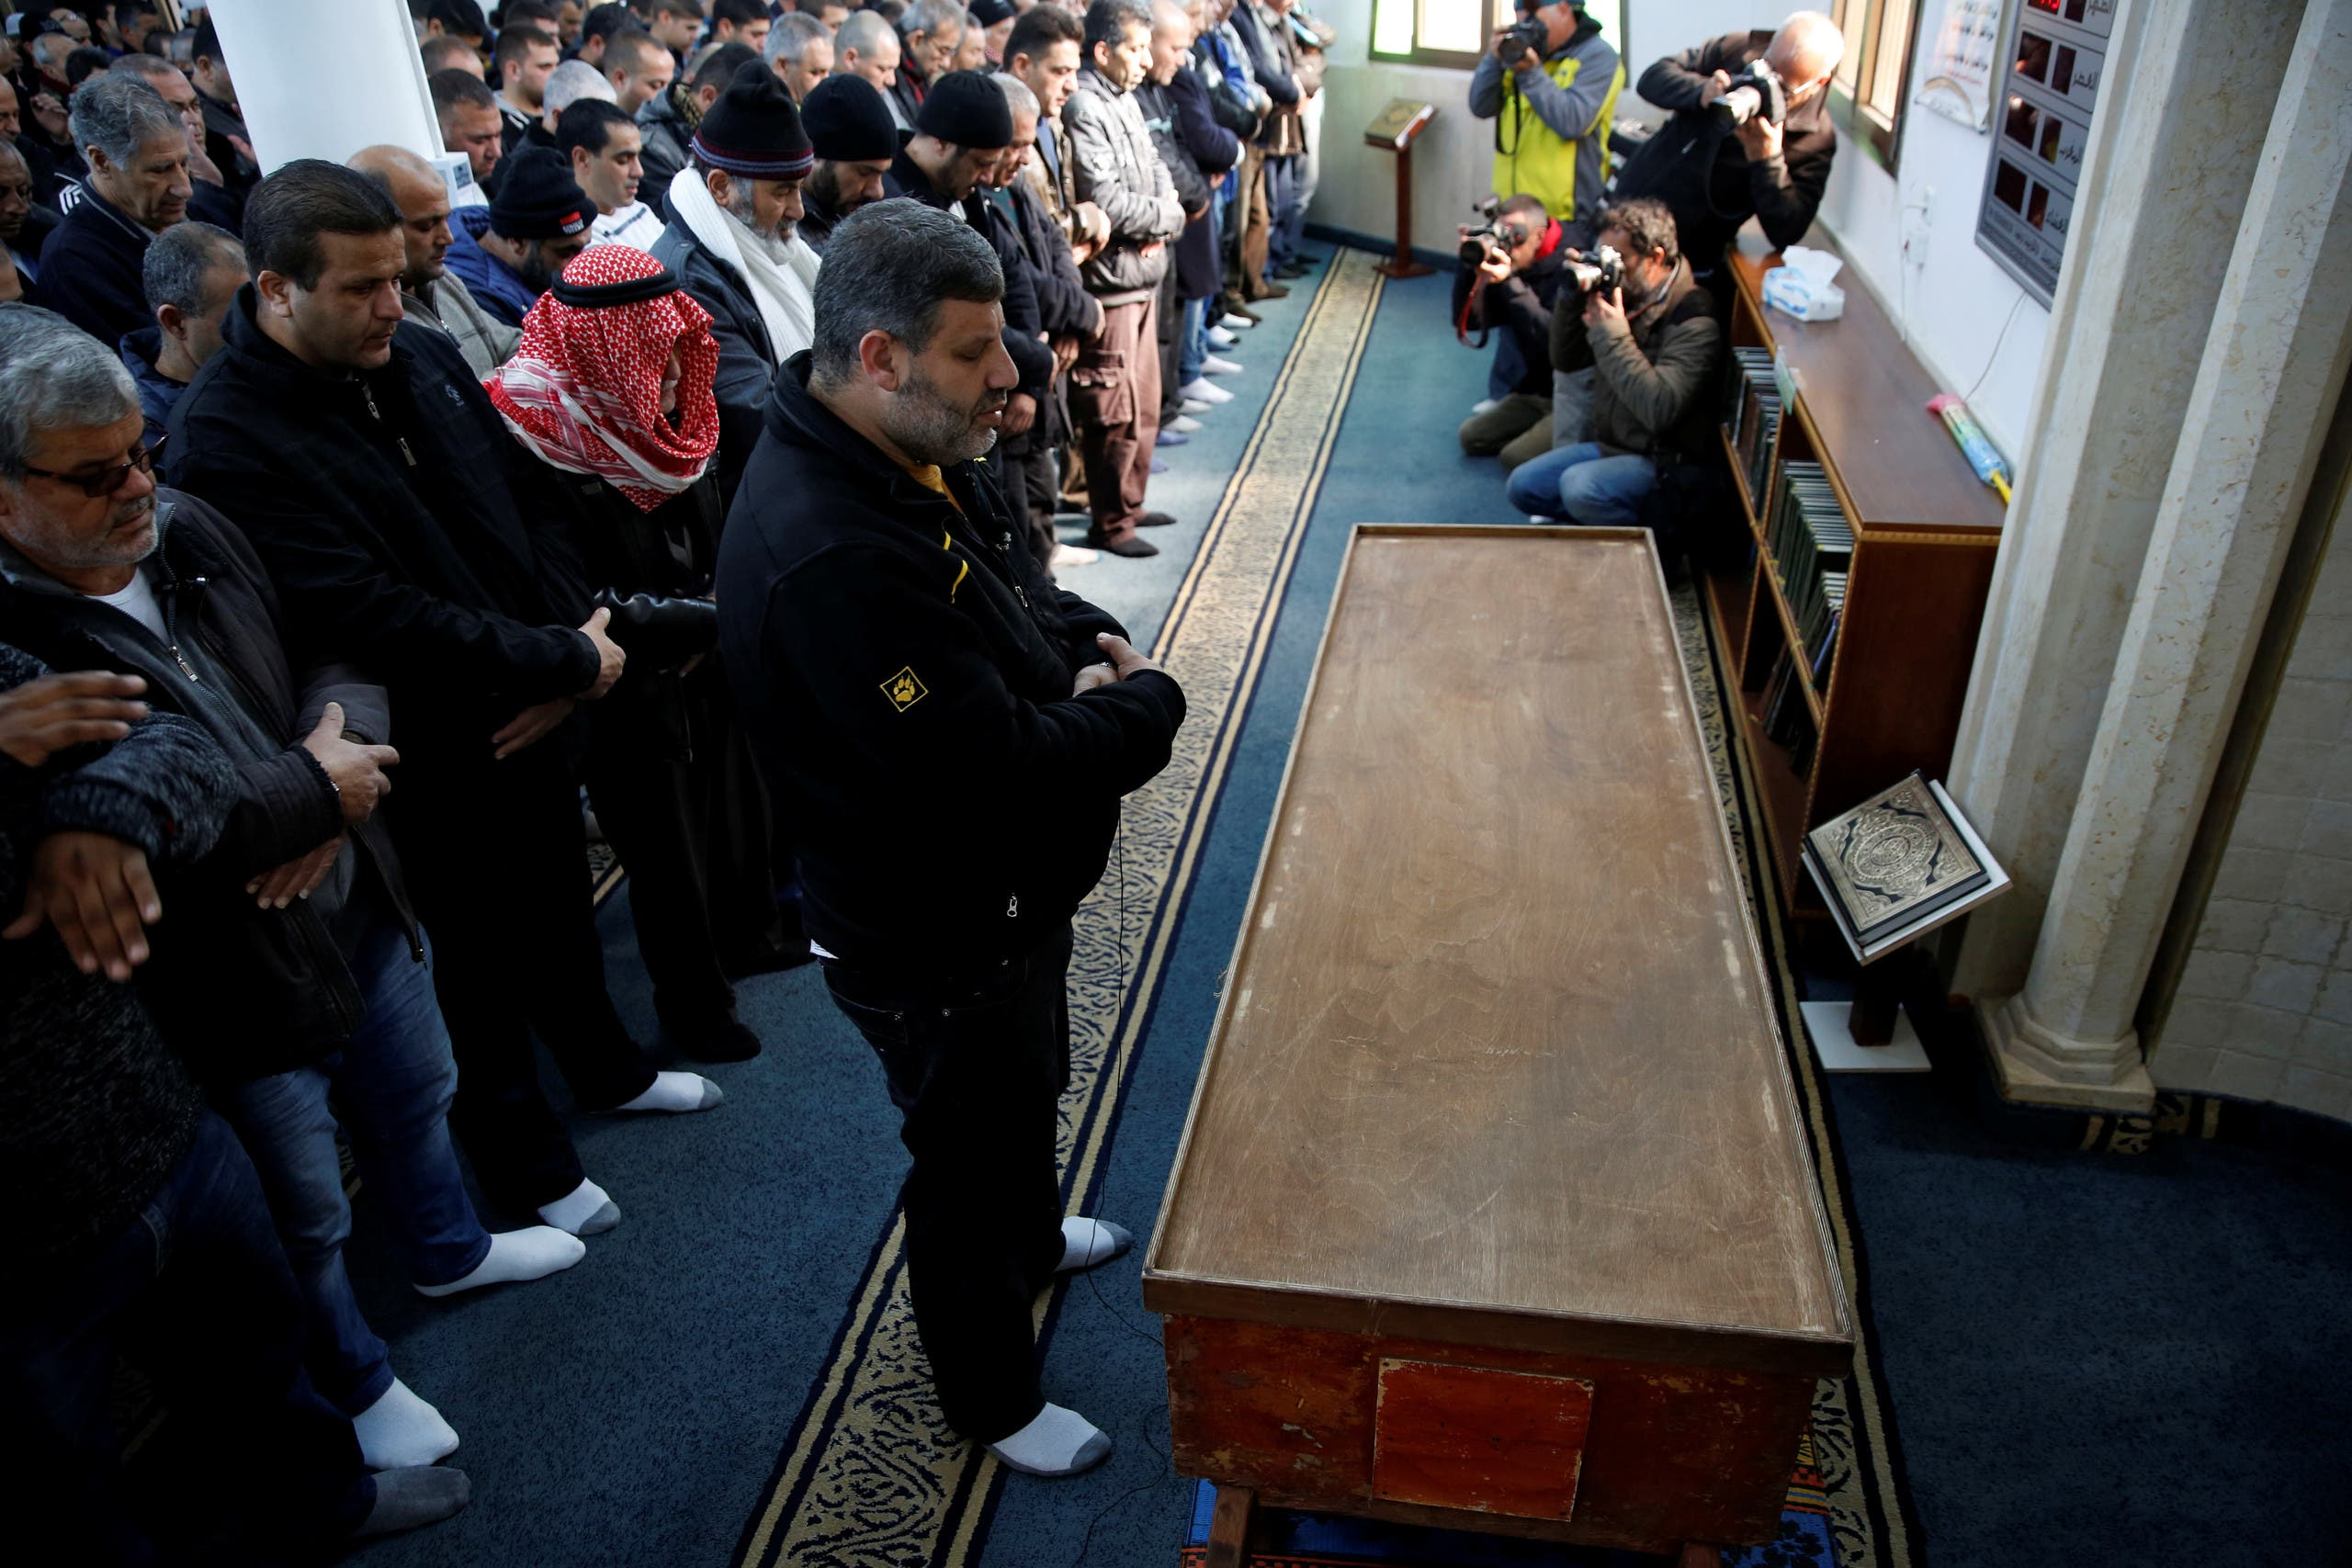 Relatives and friends pray next to the coffin of Israeli woman, Leanne Nasser, who was killed in an Istanbul nightclub attack, inside a mosque at the Israeli town of Tira, Israel January 3, 2017. REUTERS/Ronen Zvulun